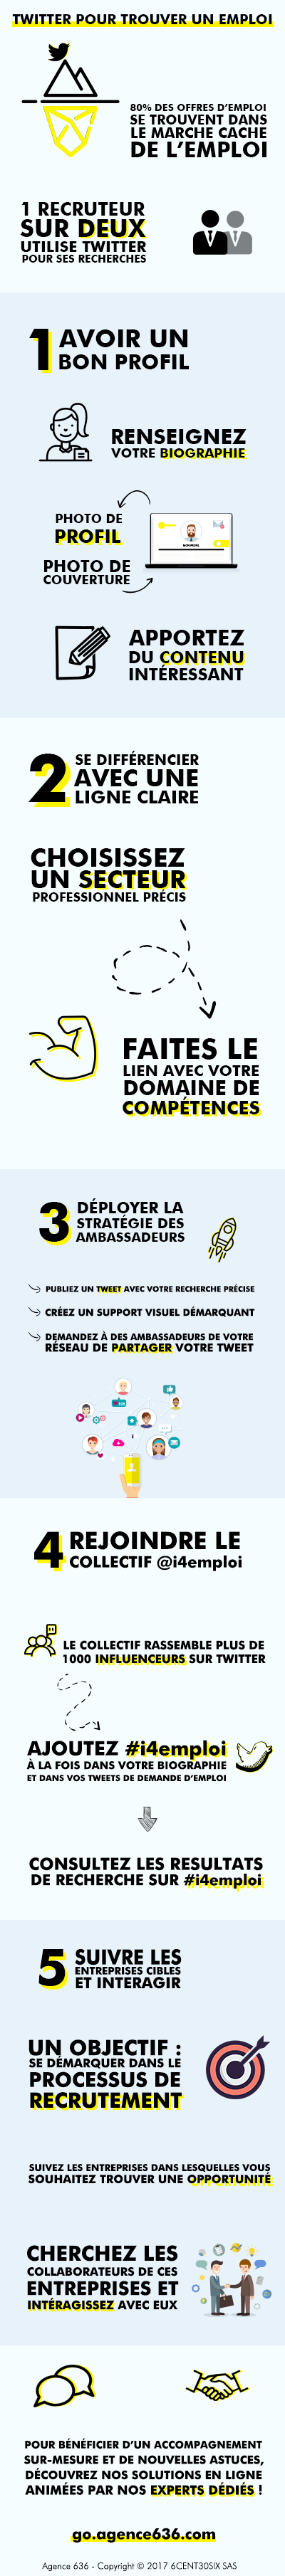 Infographie_Agence636_Twitter_Emploi